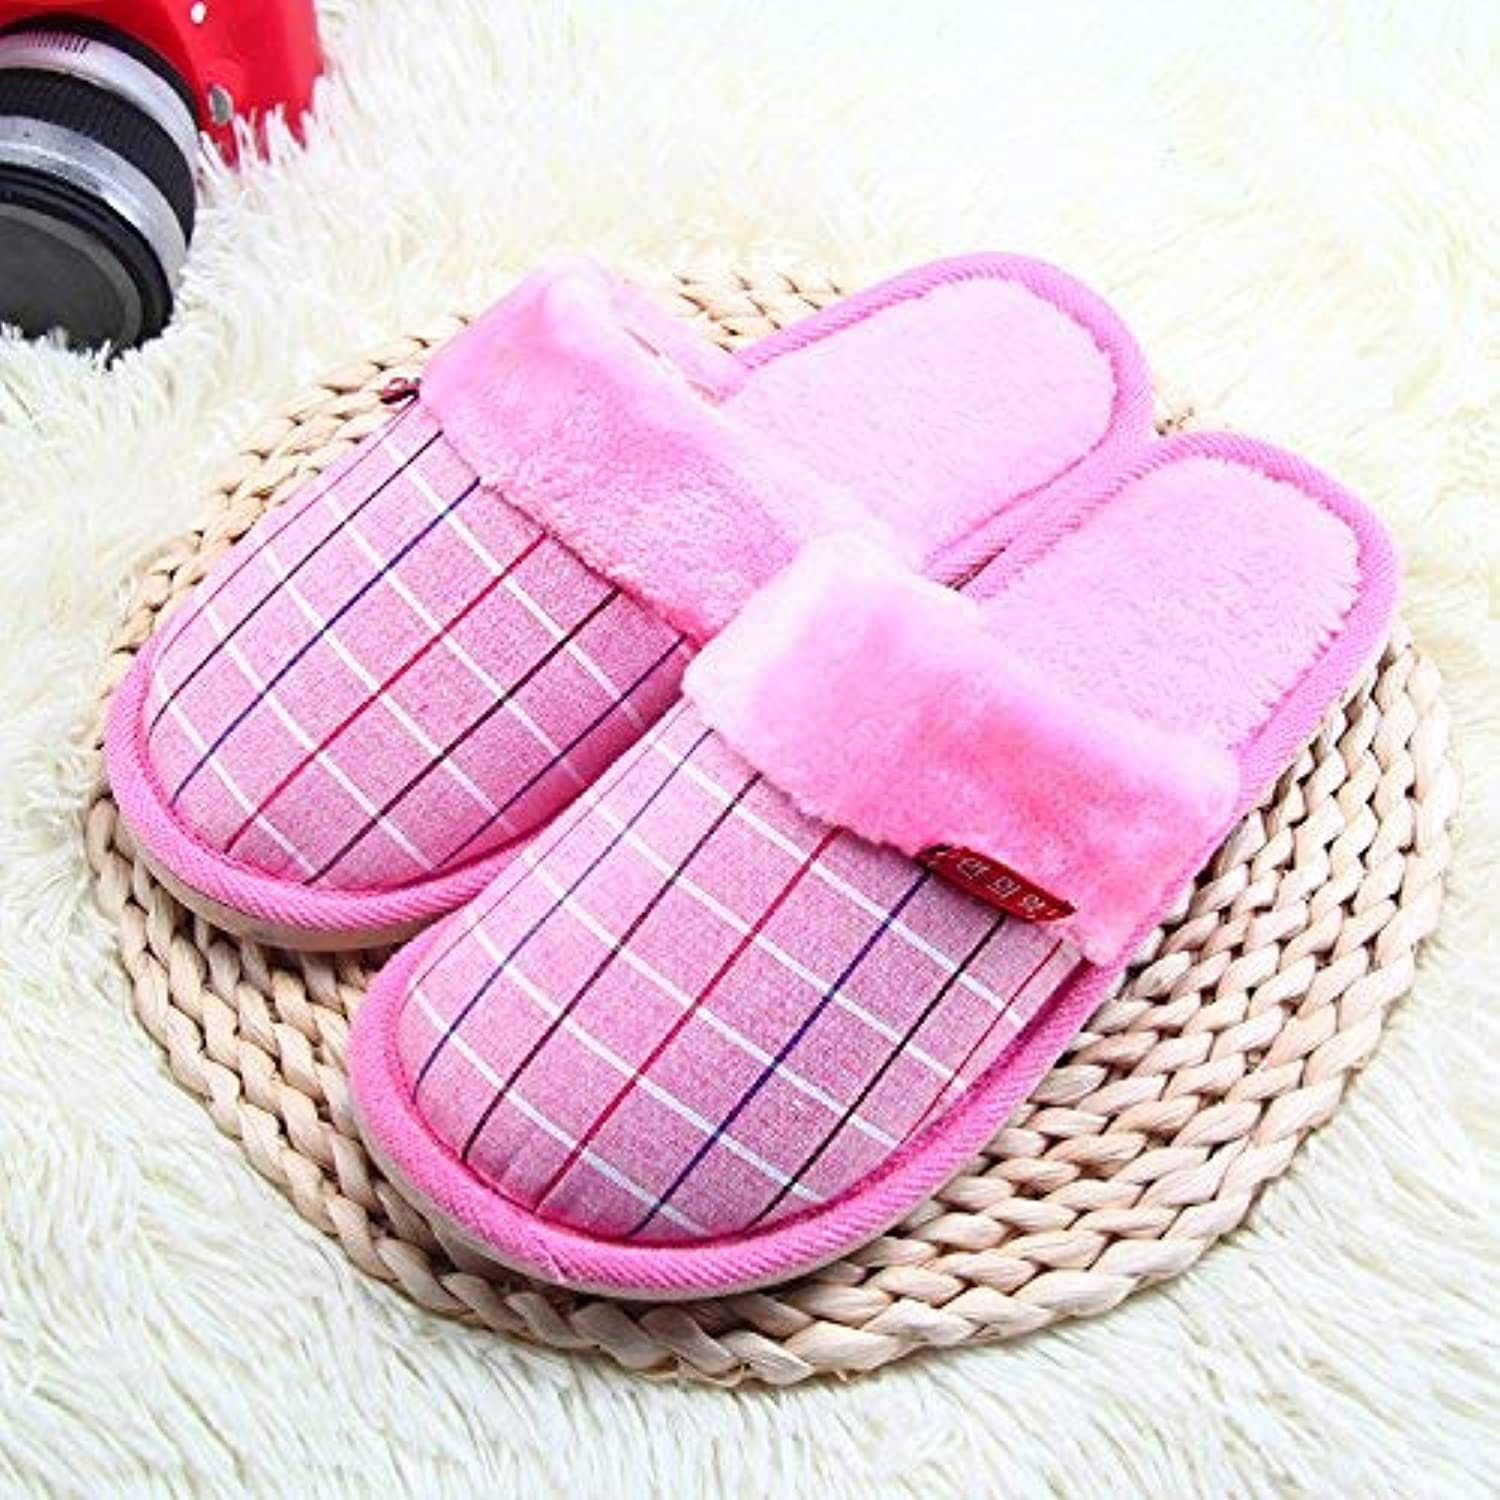 JaHGDU Women Home Slippers Interior Keep Warm Non-Slip Padded Slippers Pink Large Fashion Slippers for Women